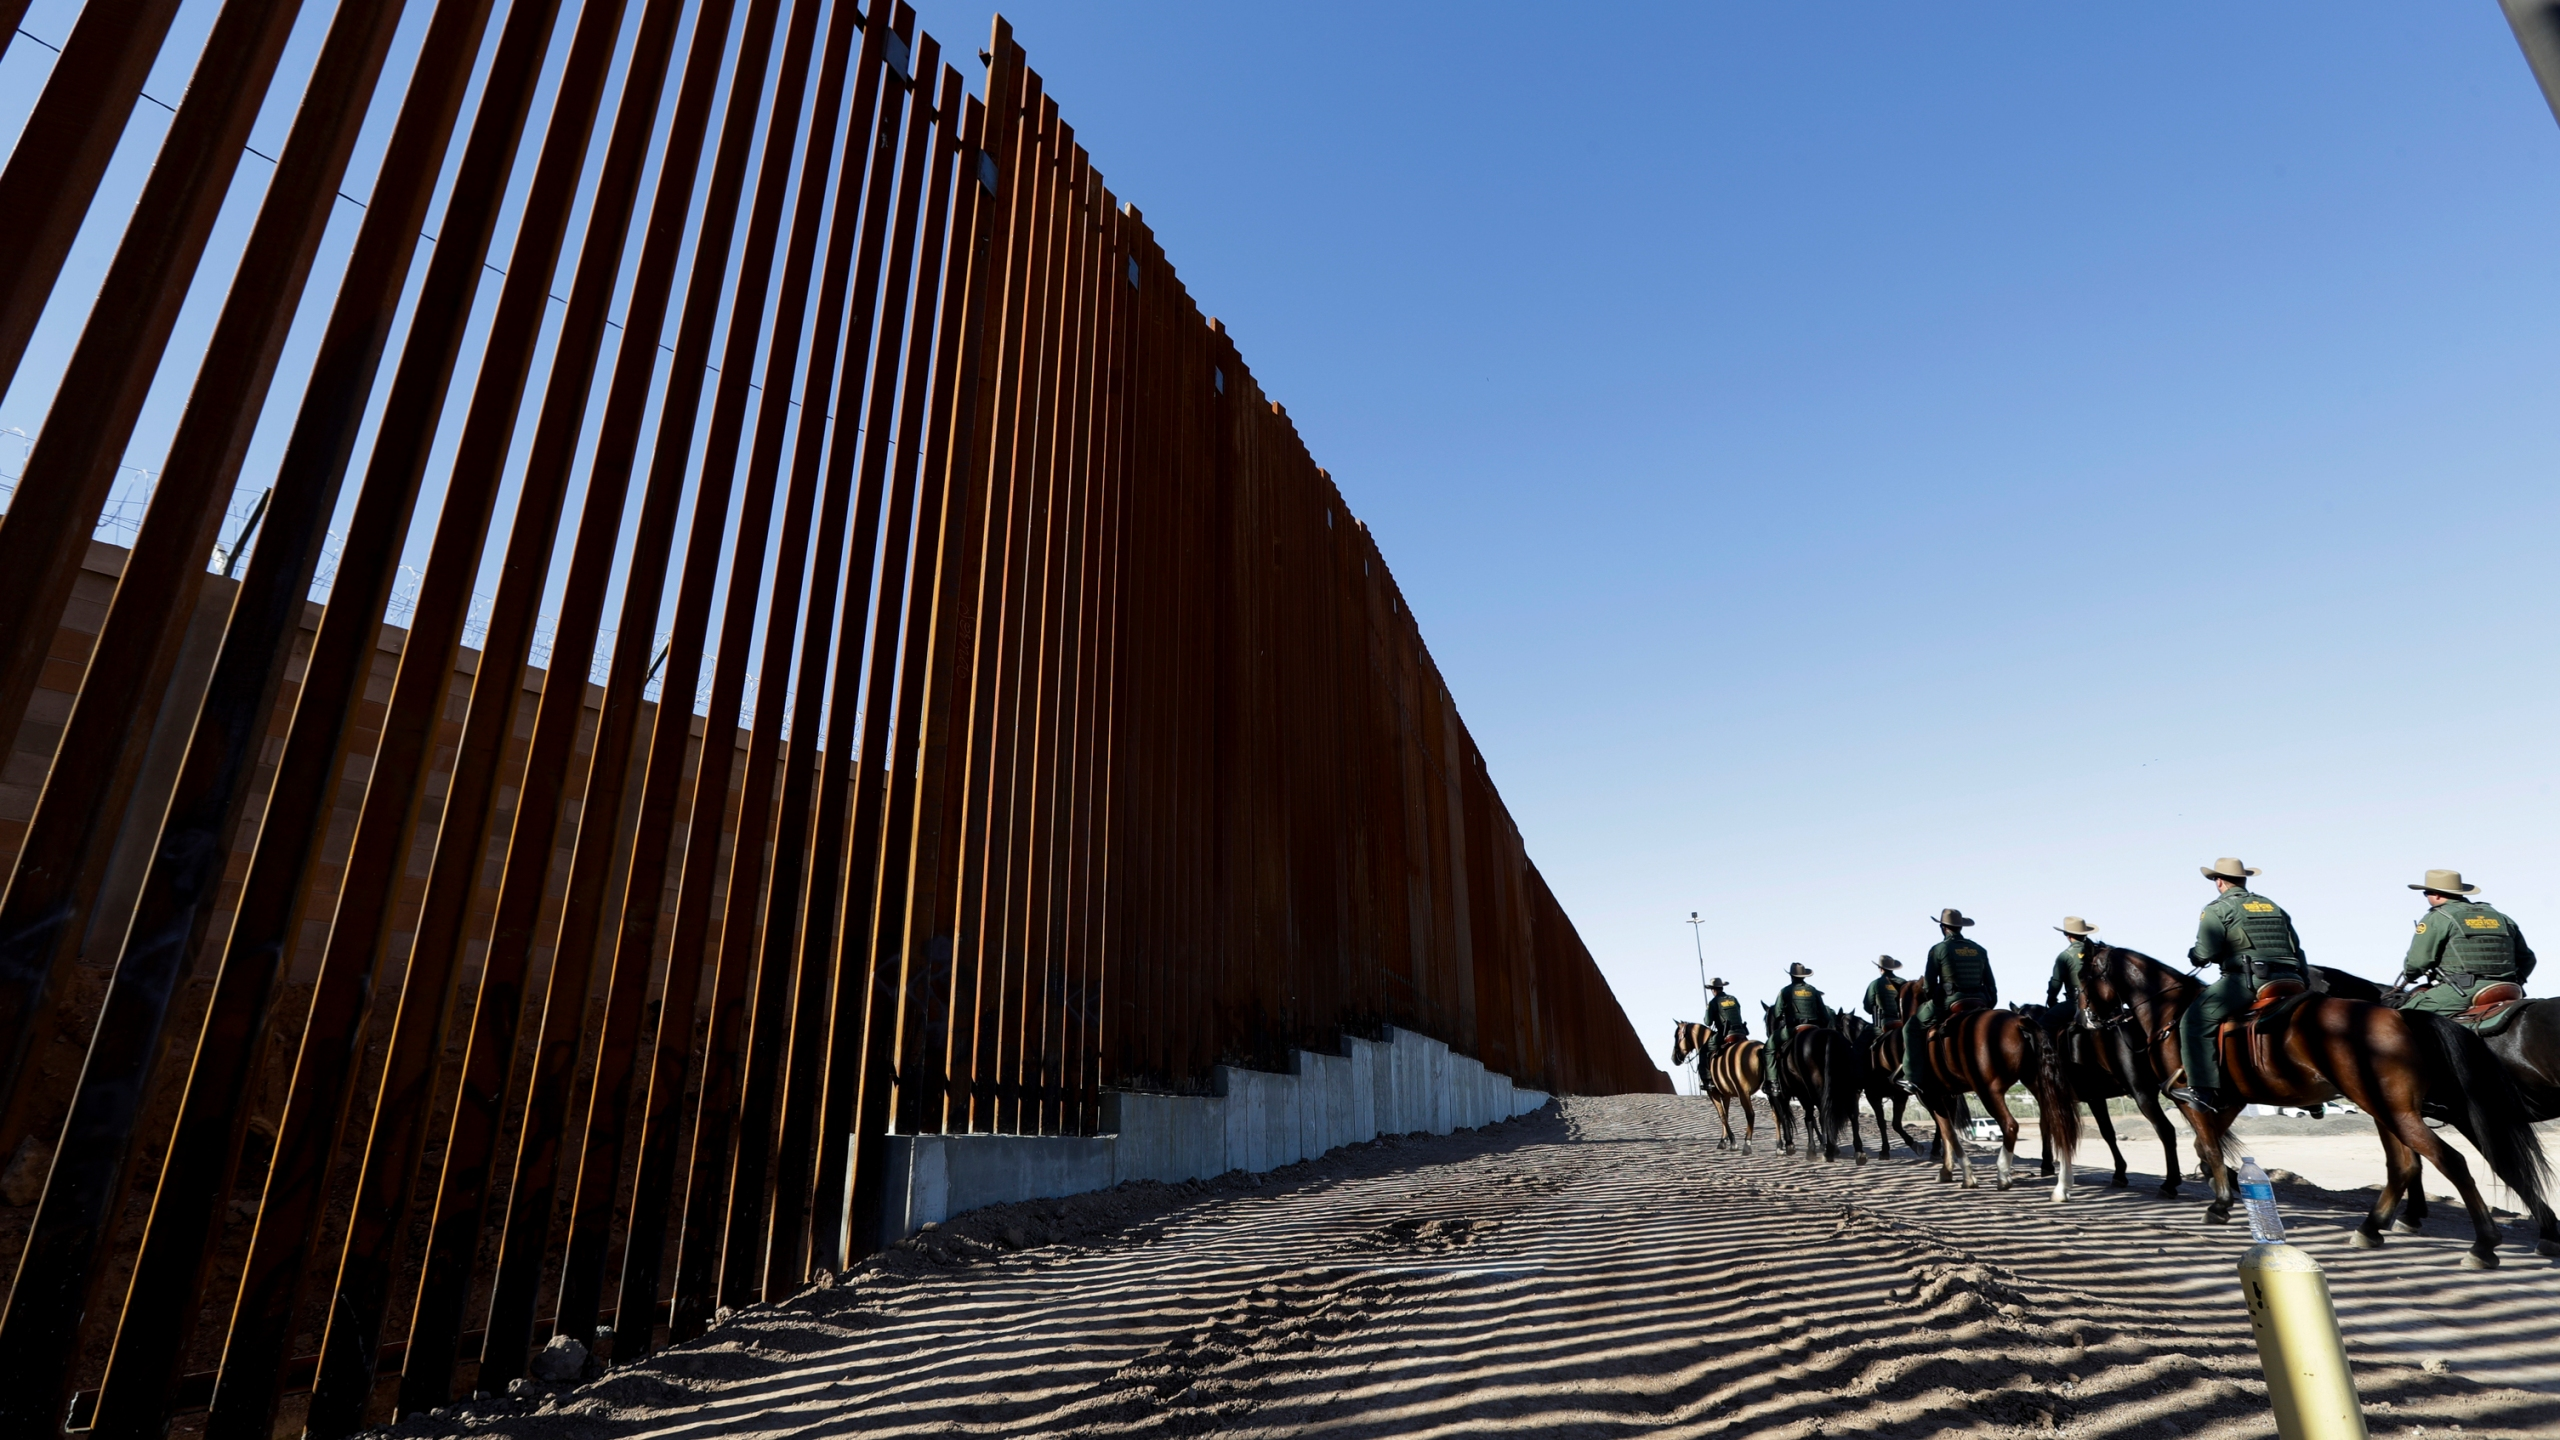 Border_Security_Wall_78227-159532.jpg02768021